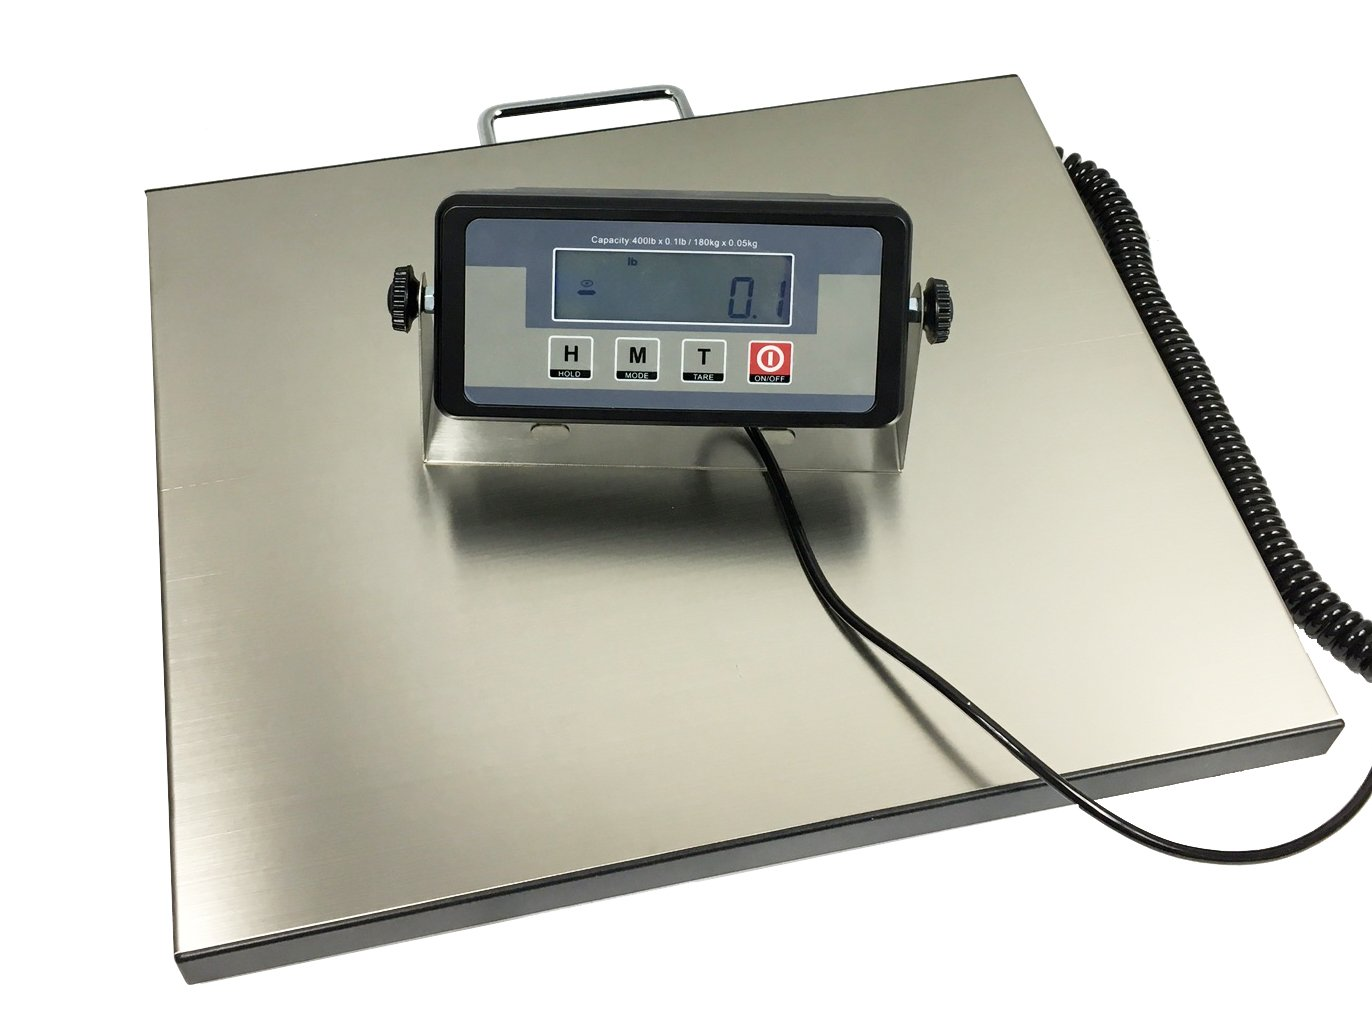 Angel USA 400 Pound Physician Digital Scale Body Weight Doctor Weighing Balance for Office, Home, Gym by ANGEL USA (Image #2)